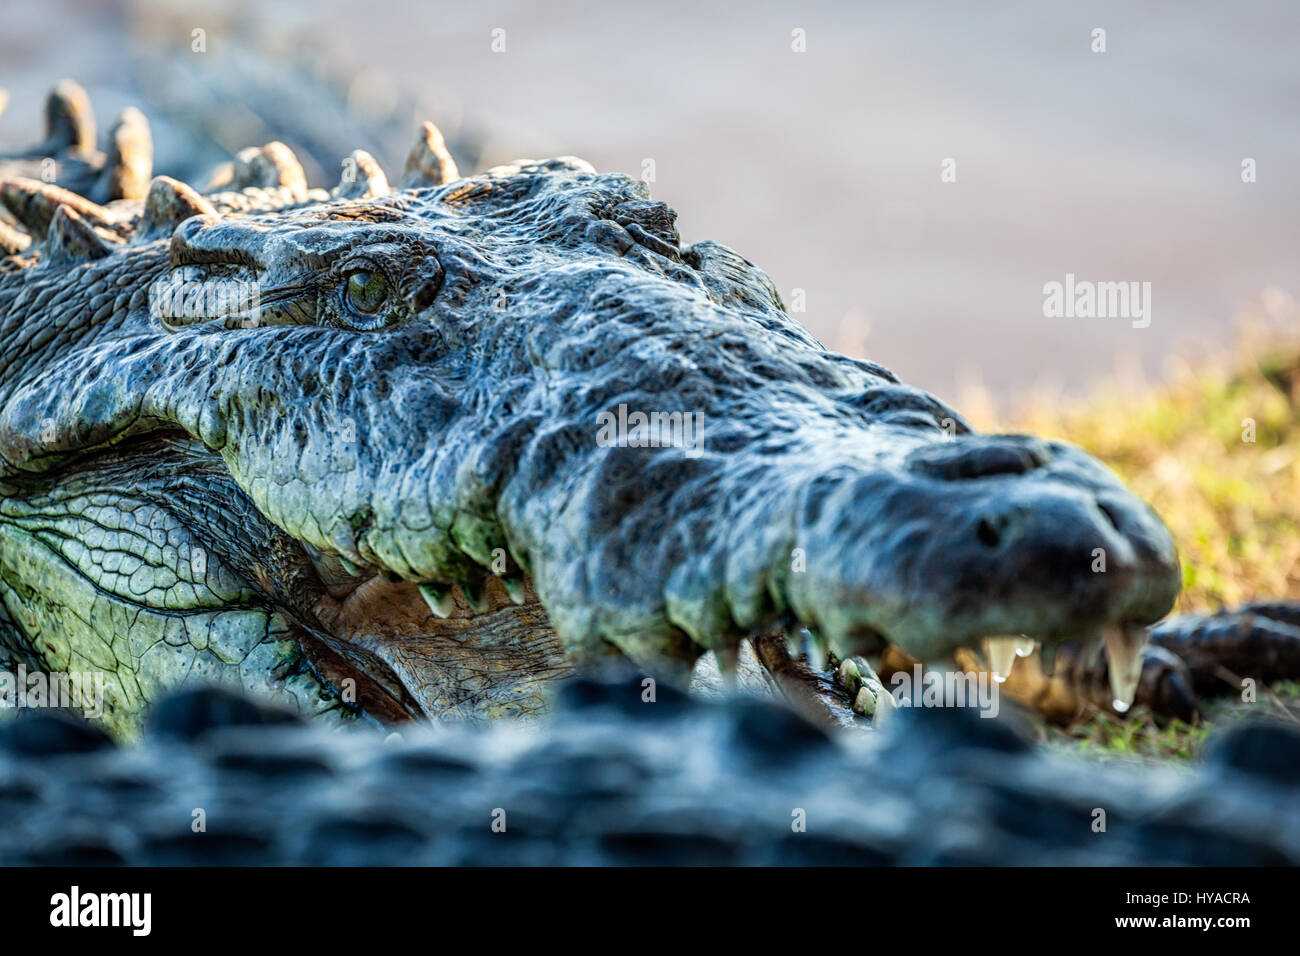 Close up of a crocodile near San Blas, Nayarit, Mexico. Stock Photo